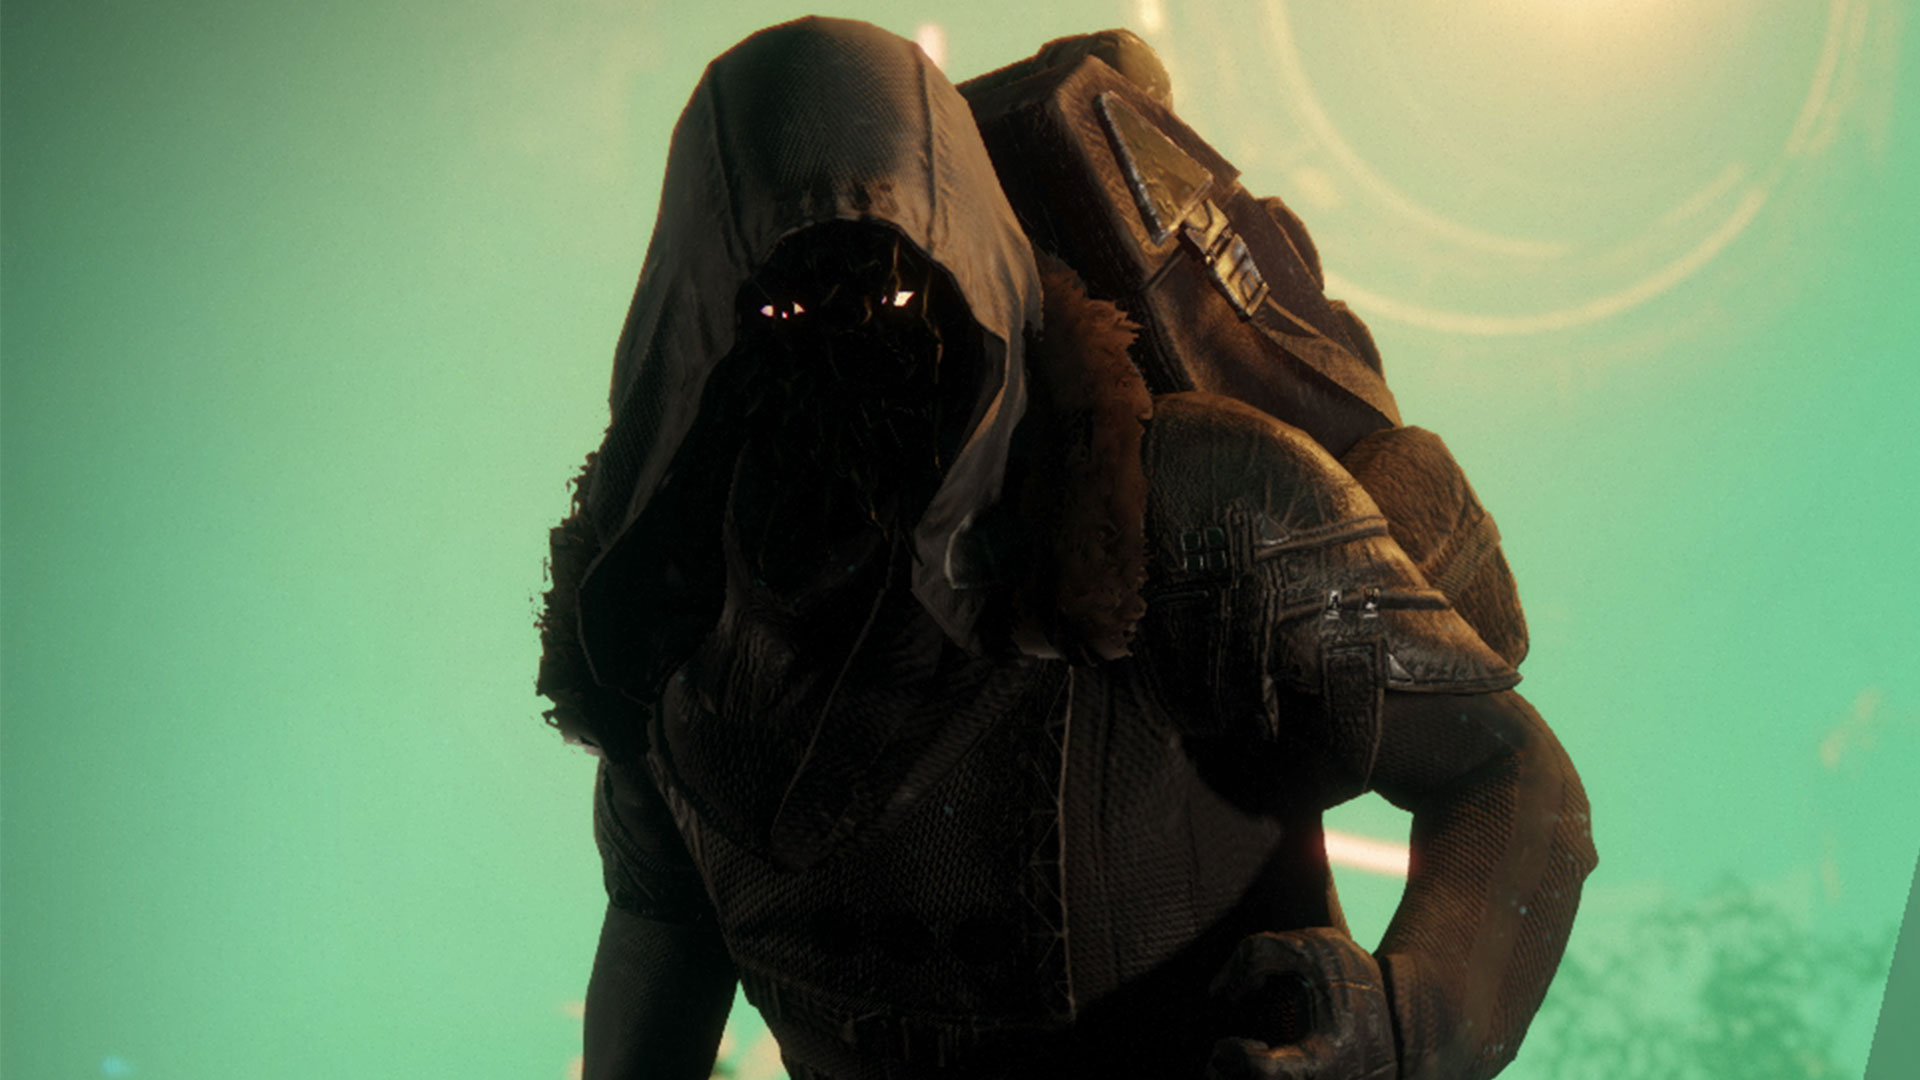 Destiny 2 Xur location and items, Oct. 4-7